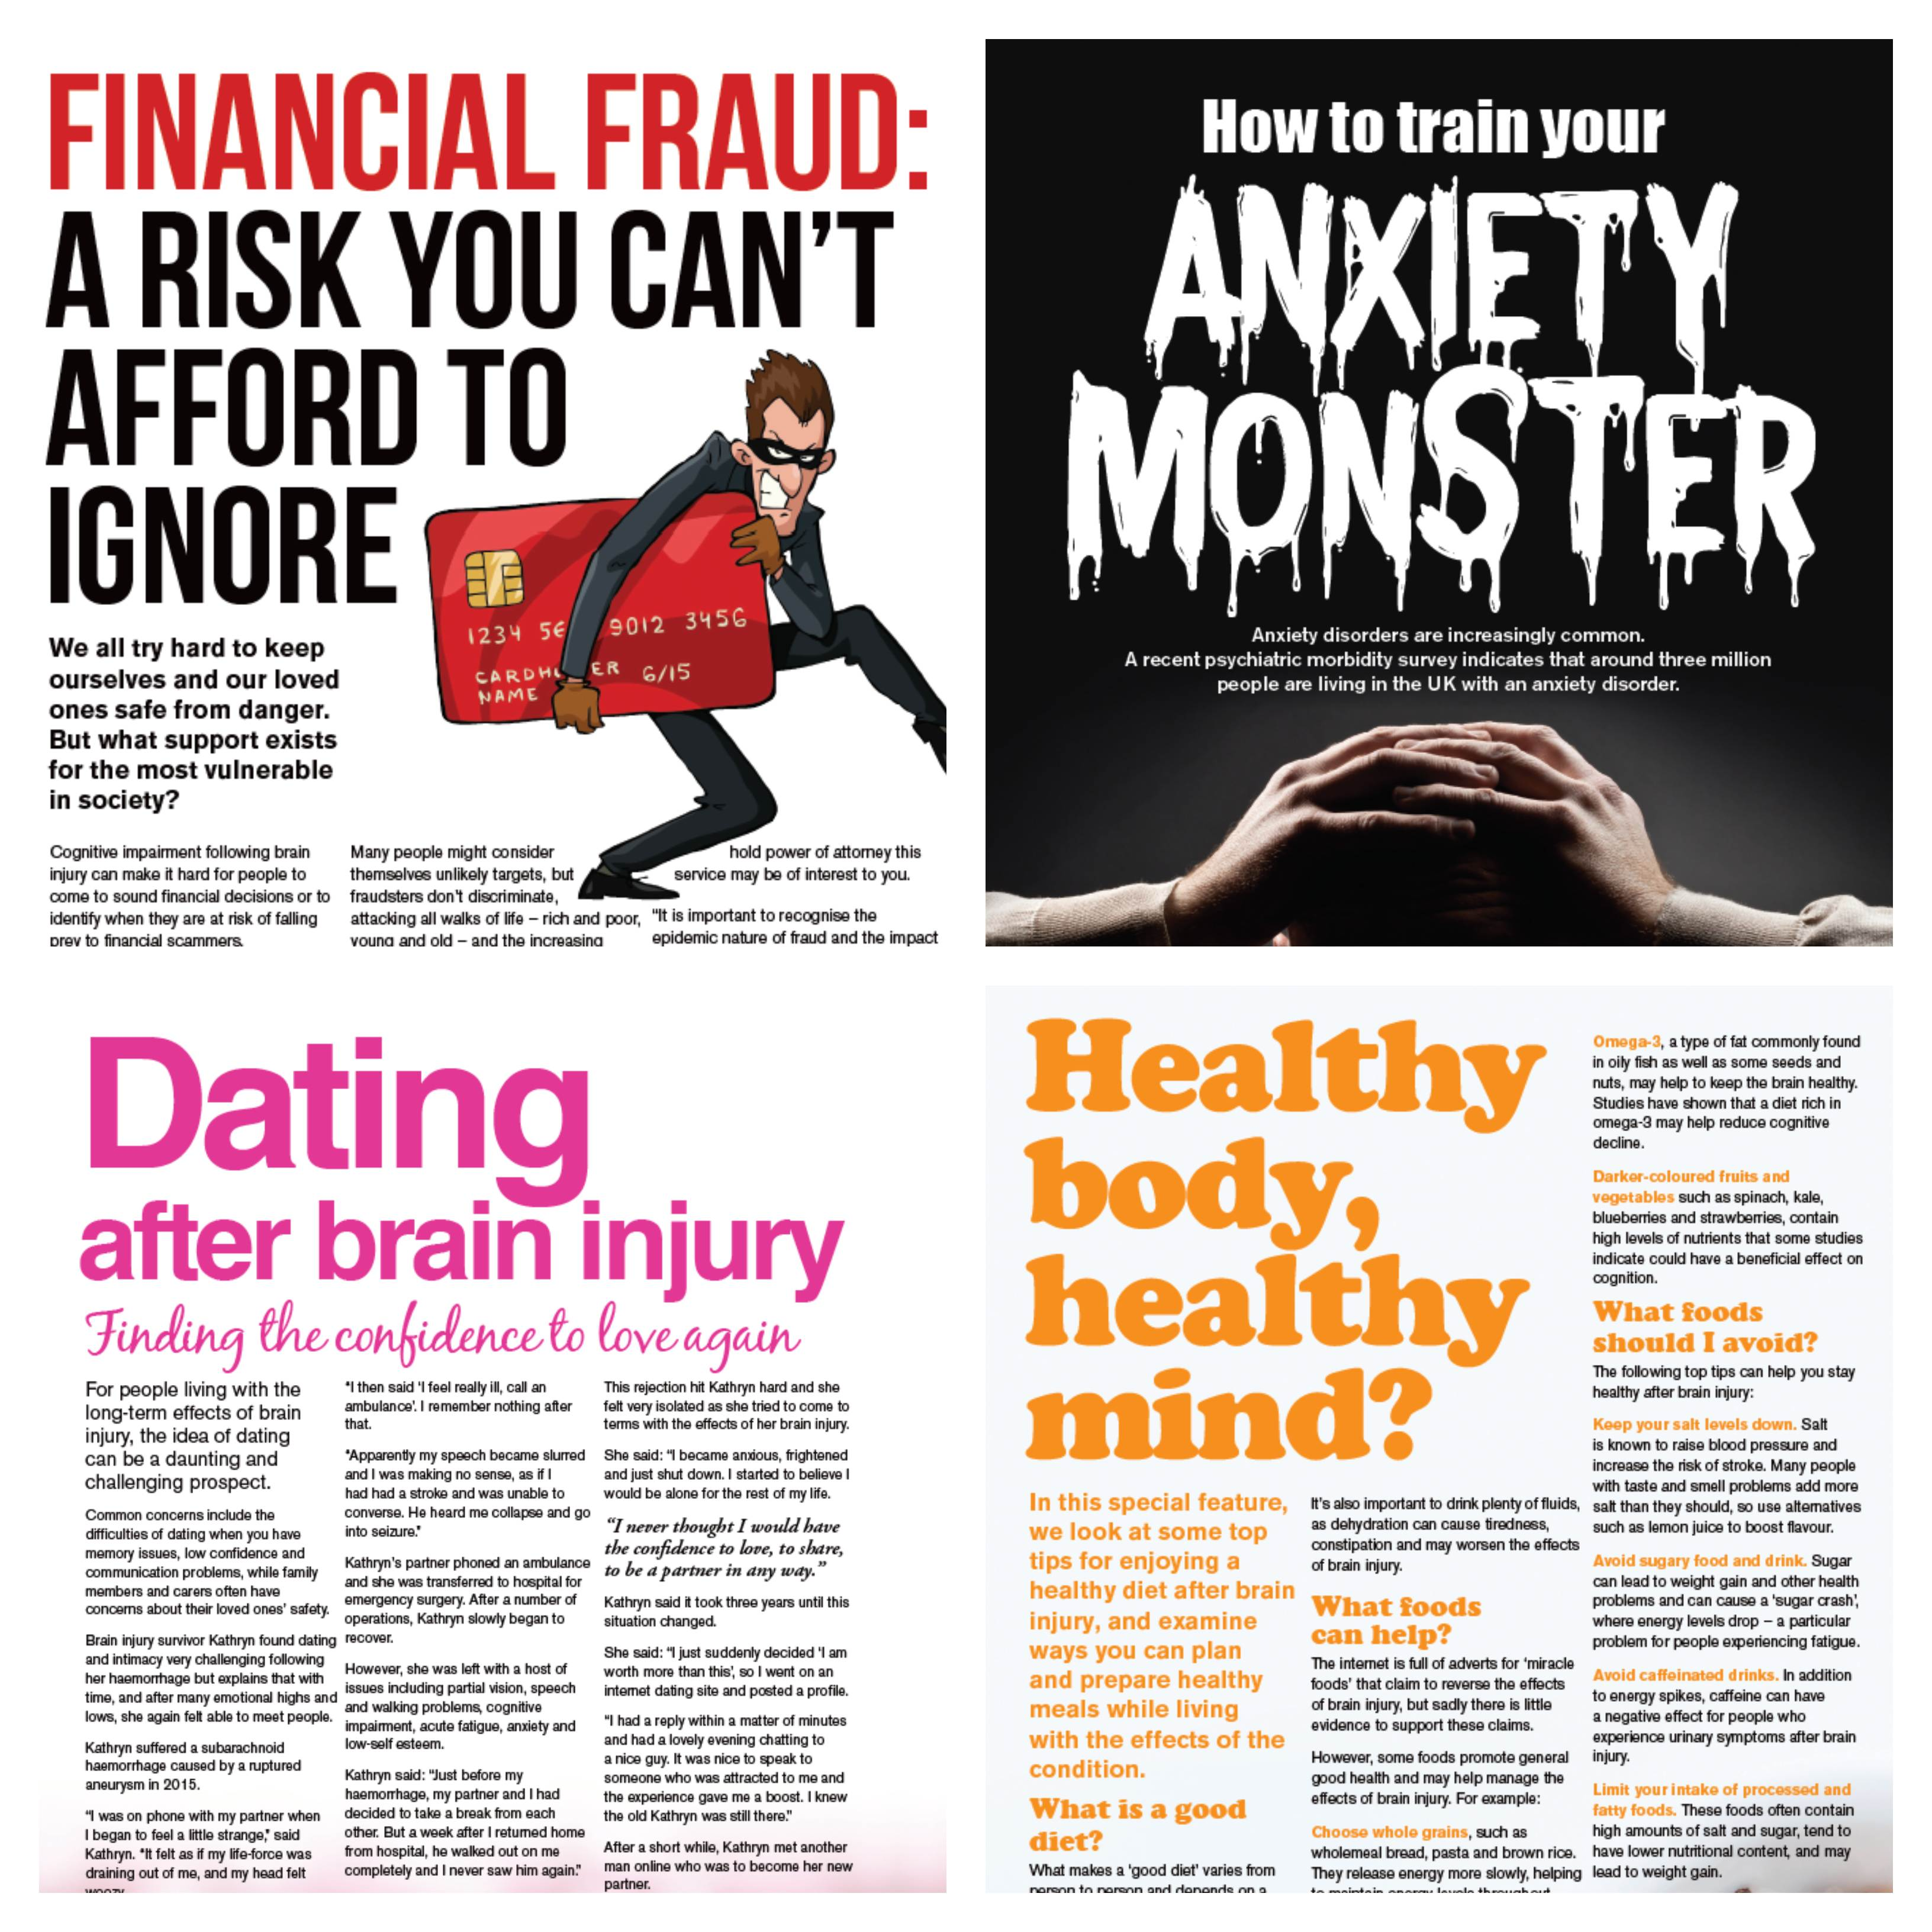 Highlights from Headway News spring 2019 include Financial Fraud: A risk you can't afford to ignore, how to train your anxiety monster, dating after brain injury and healthy body, healthy mind?